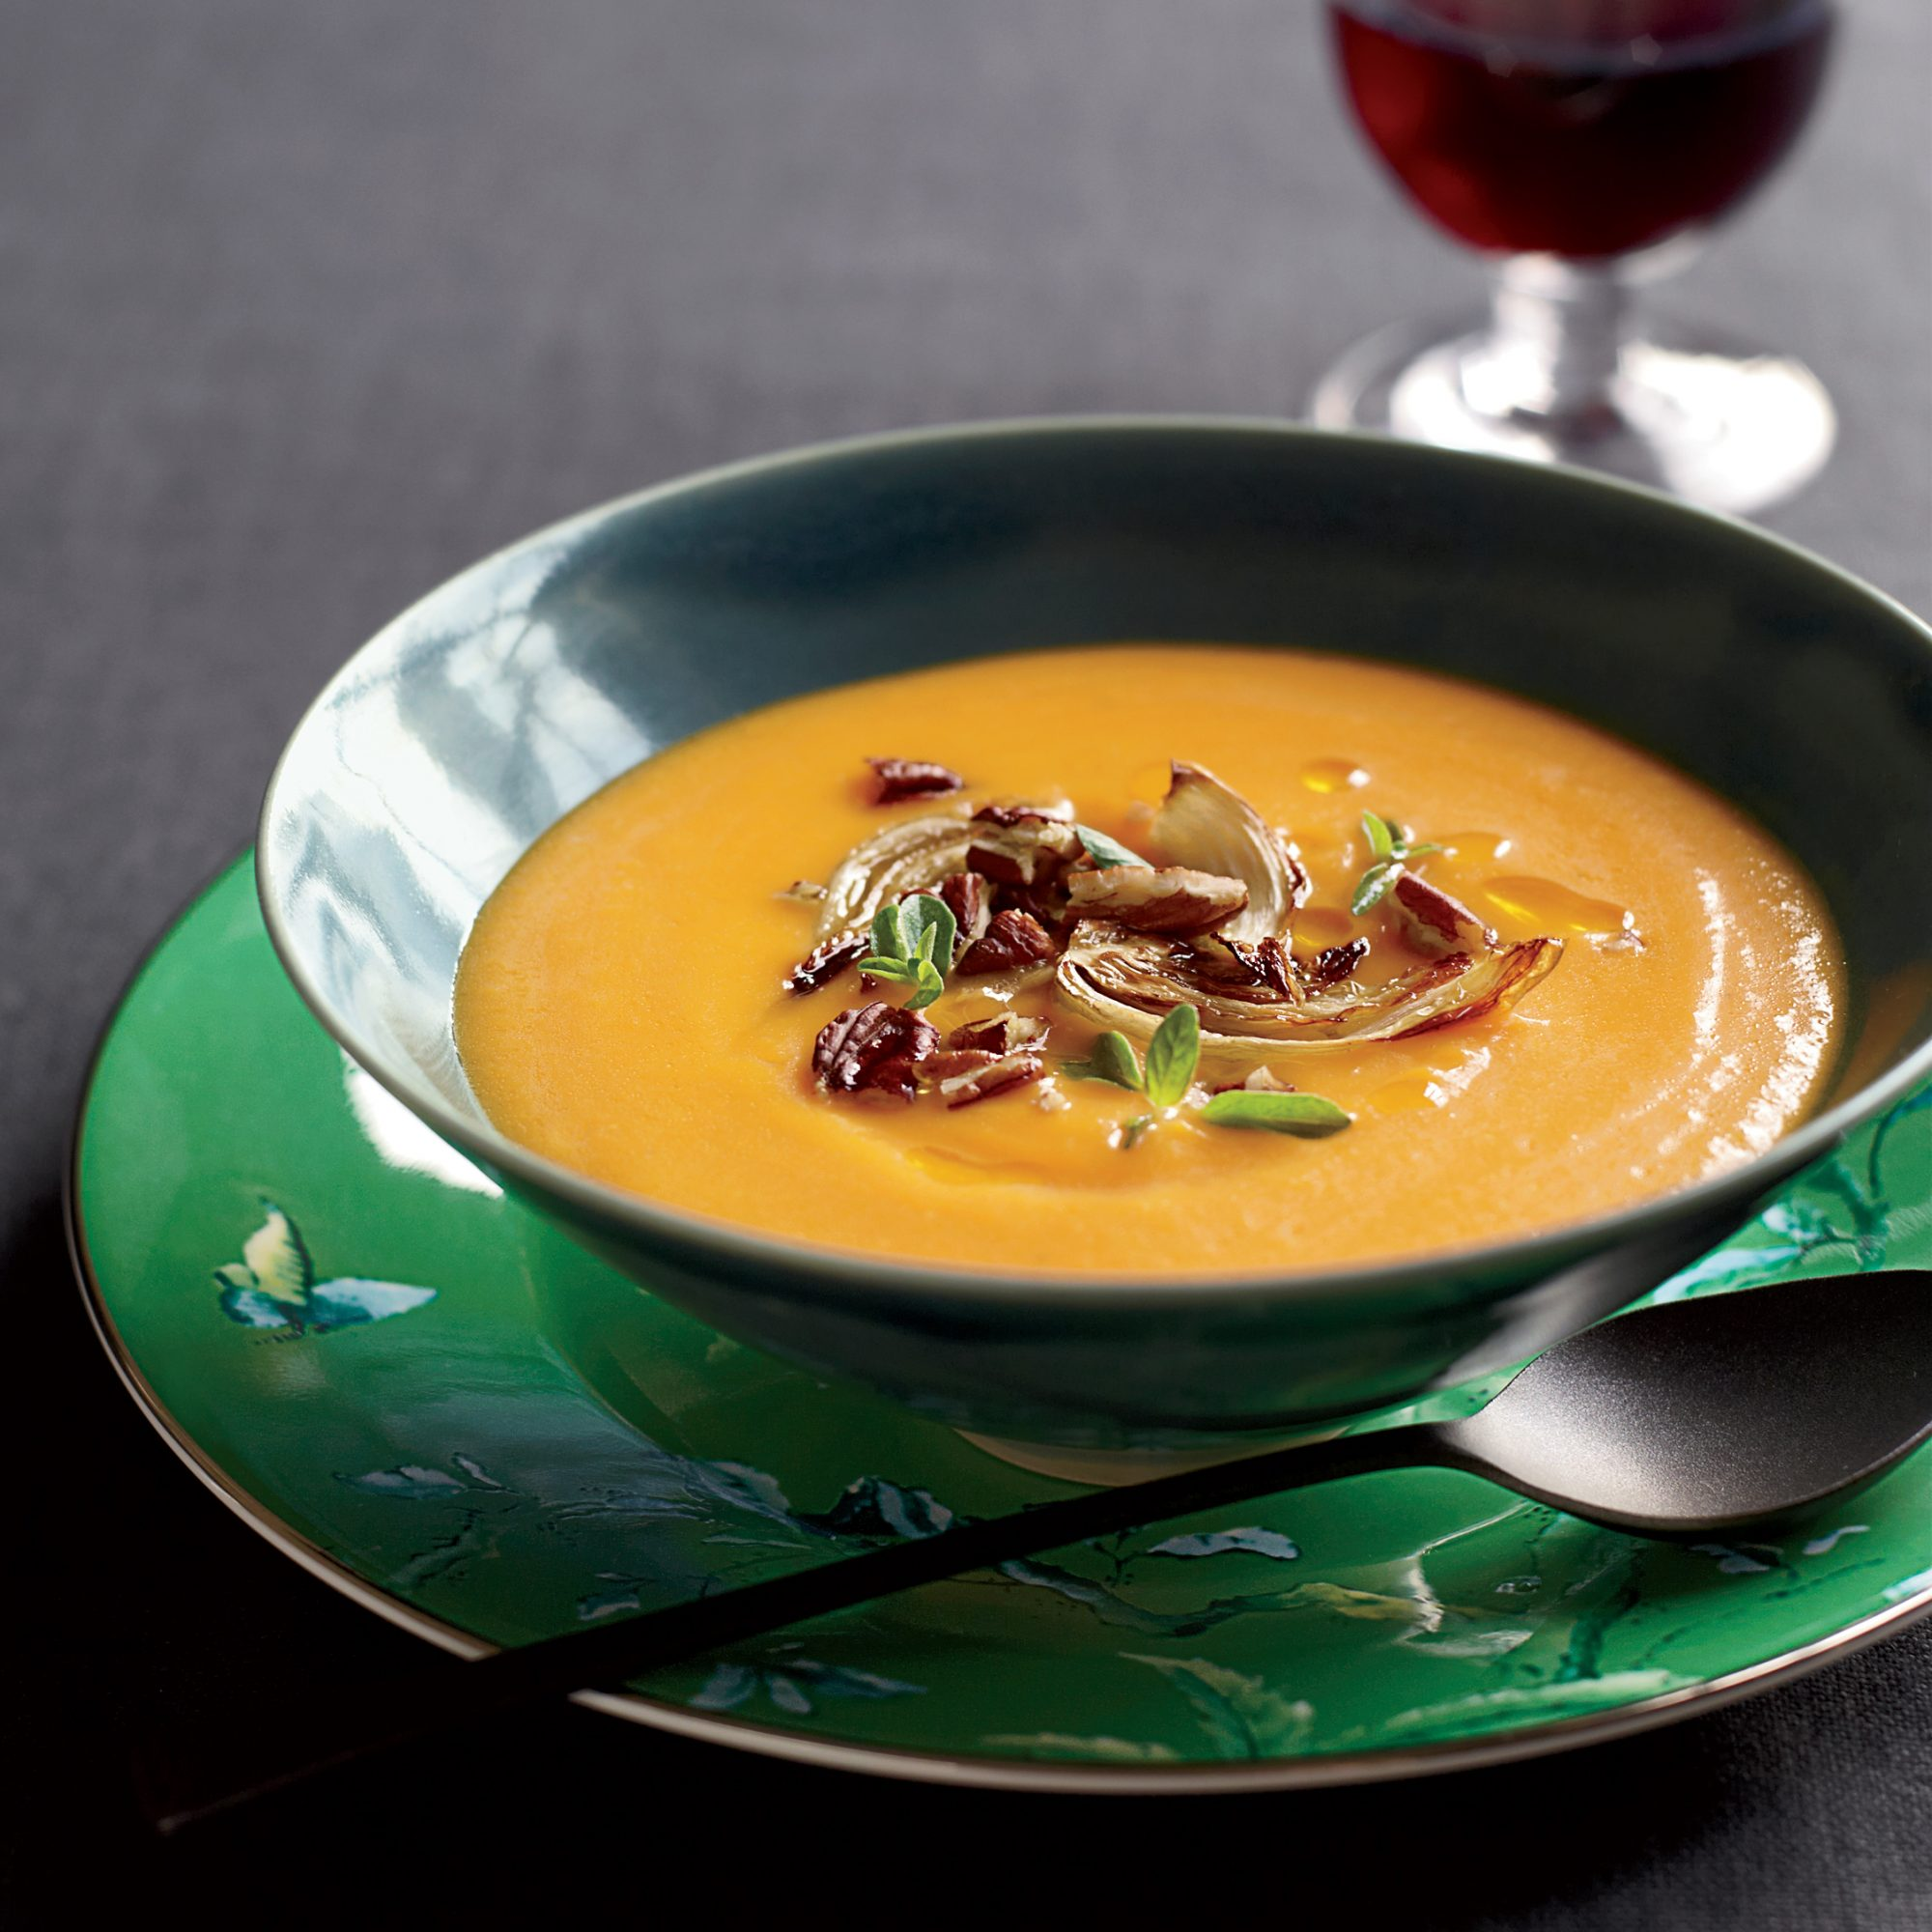 images-sys-201202-r-red-kuri-squash-soup.jpg